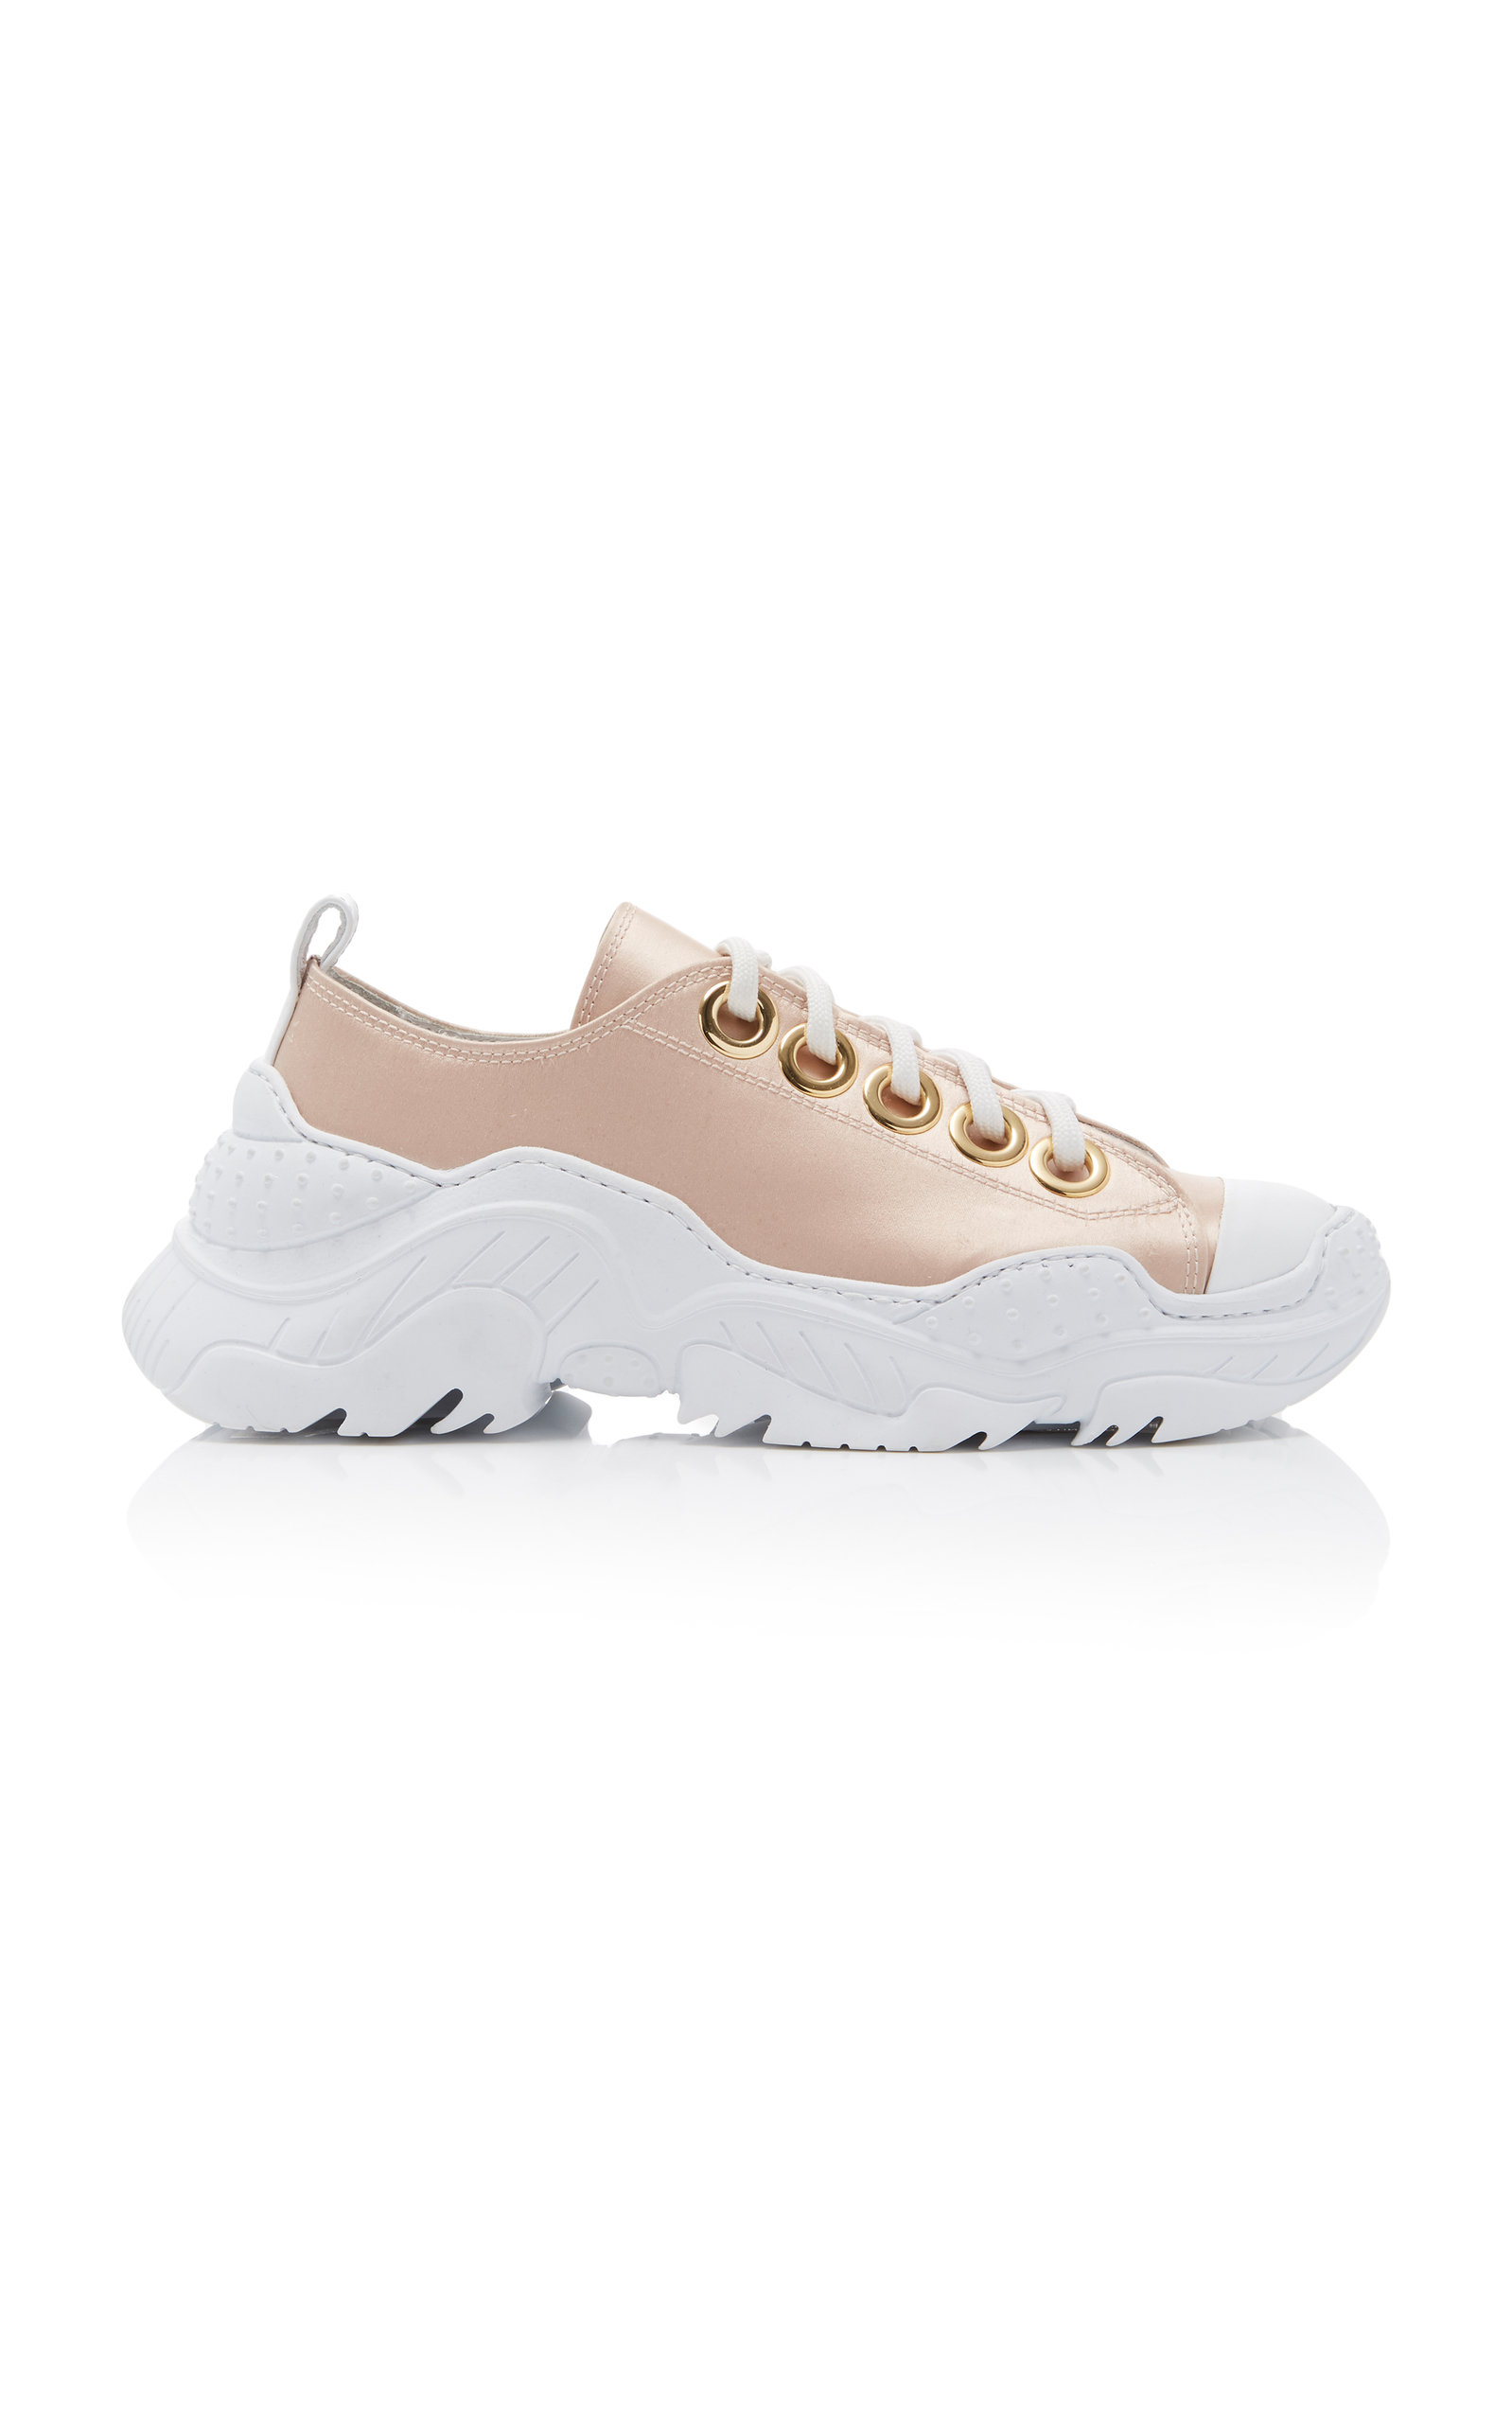 chunky lace-up sneakers - White N 3MT3nEy2